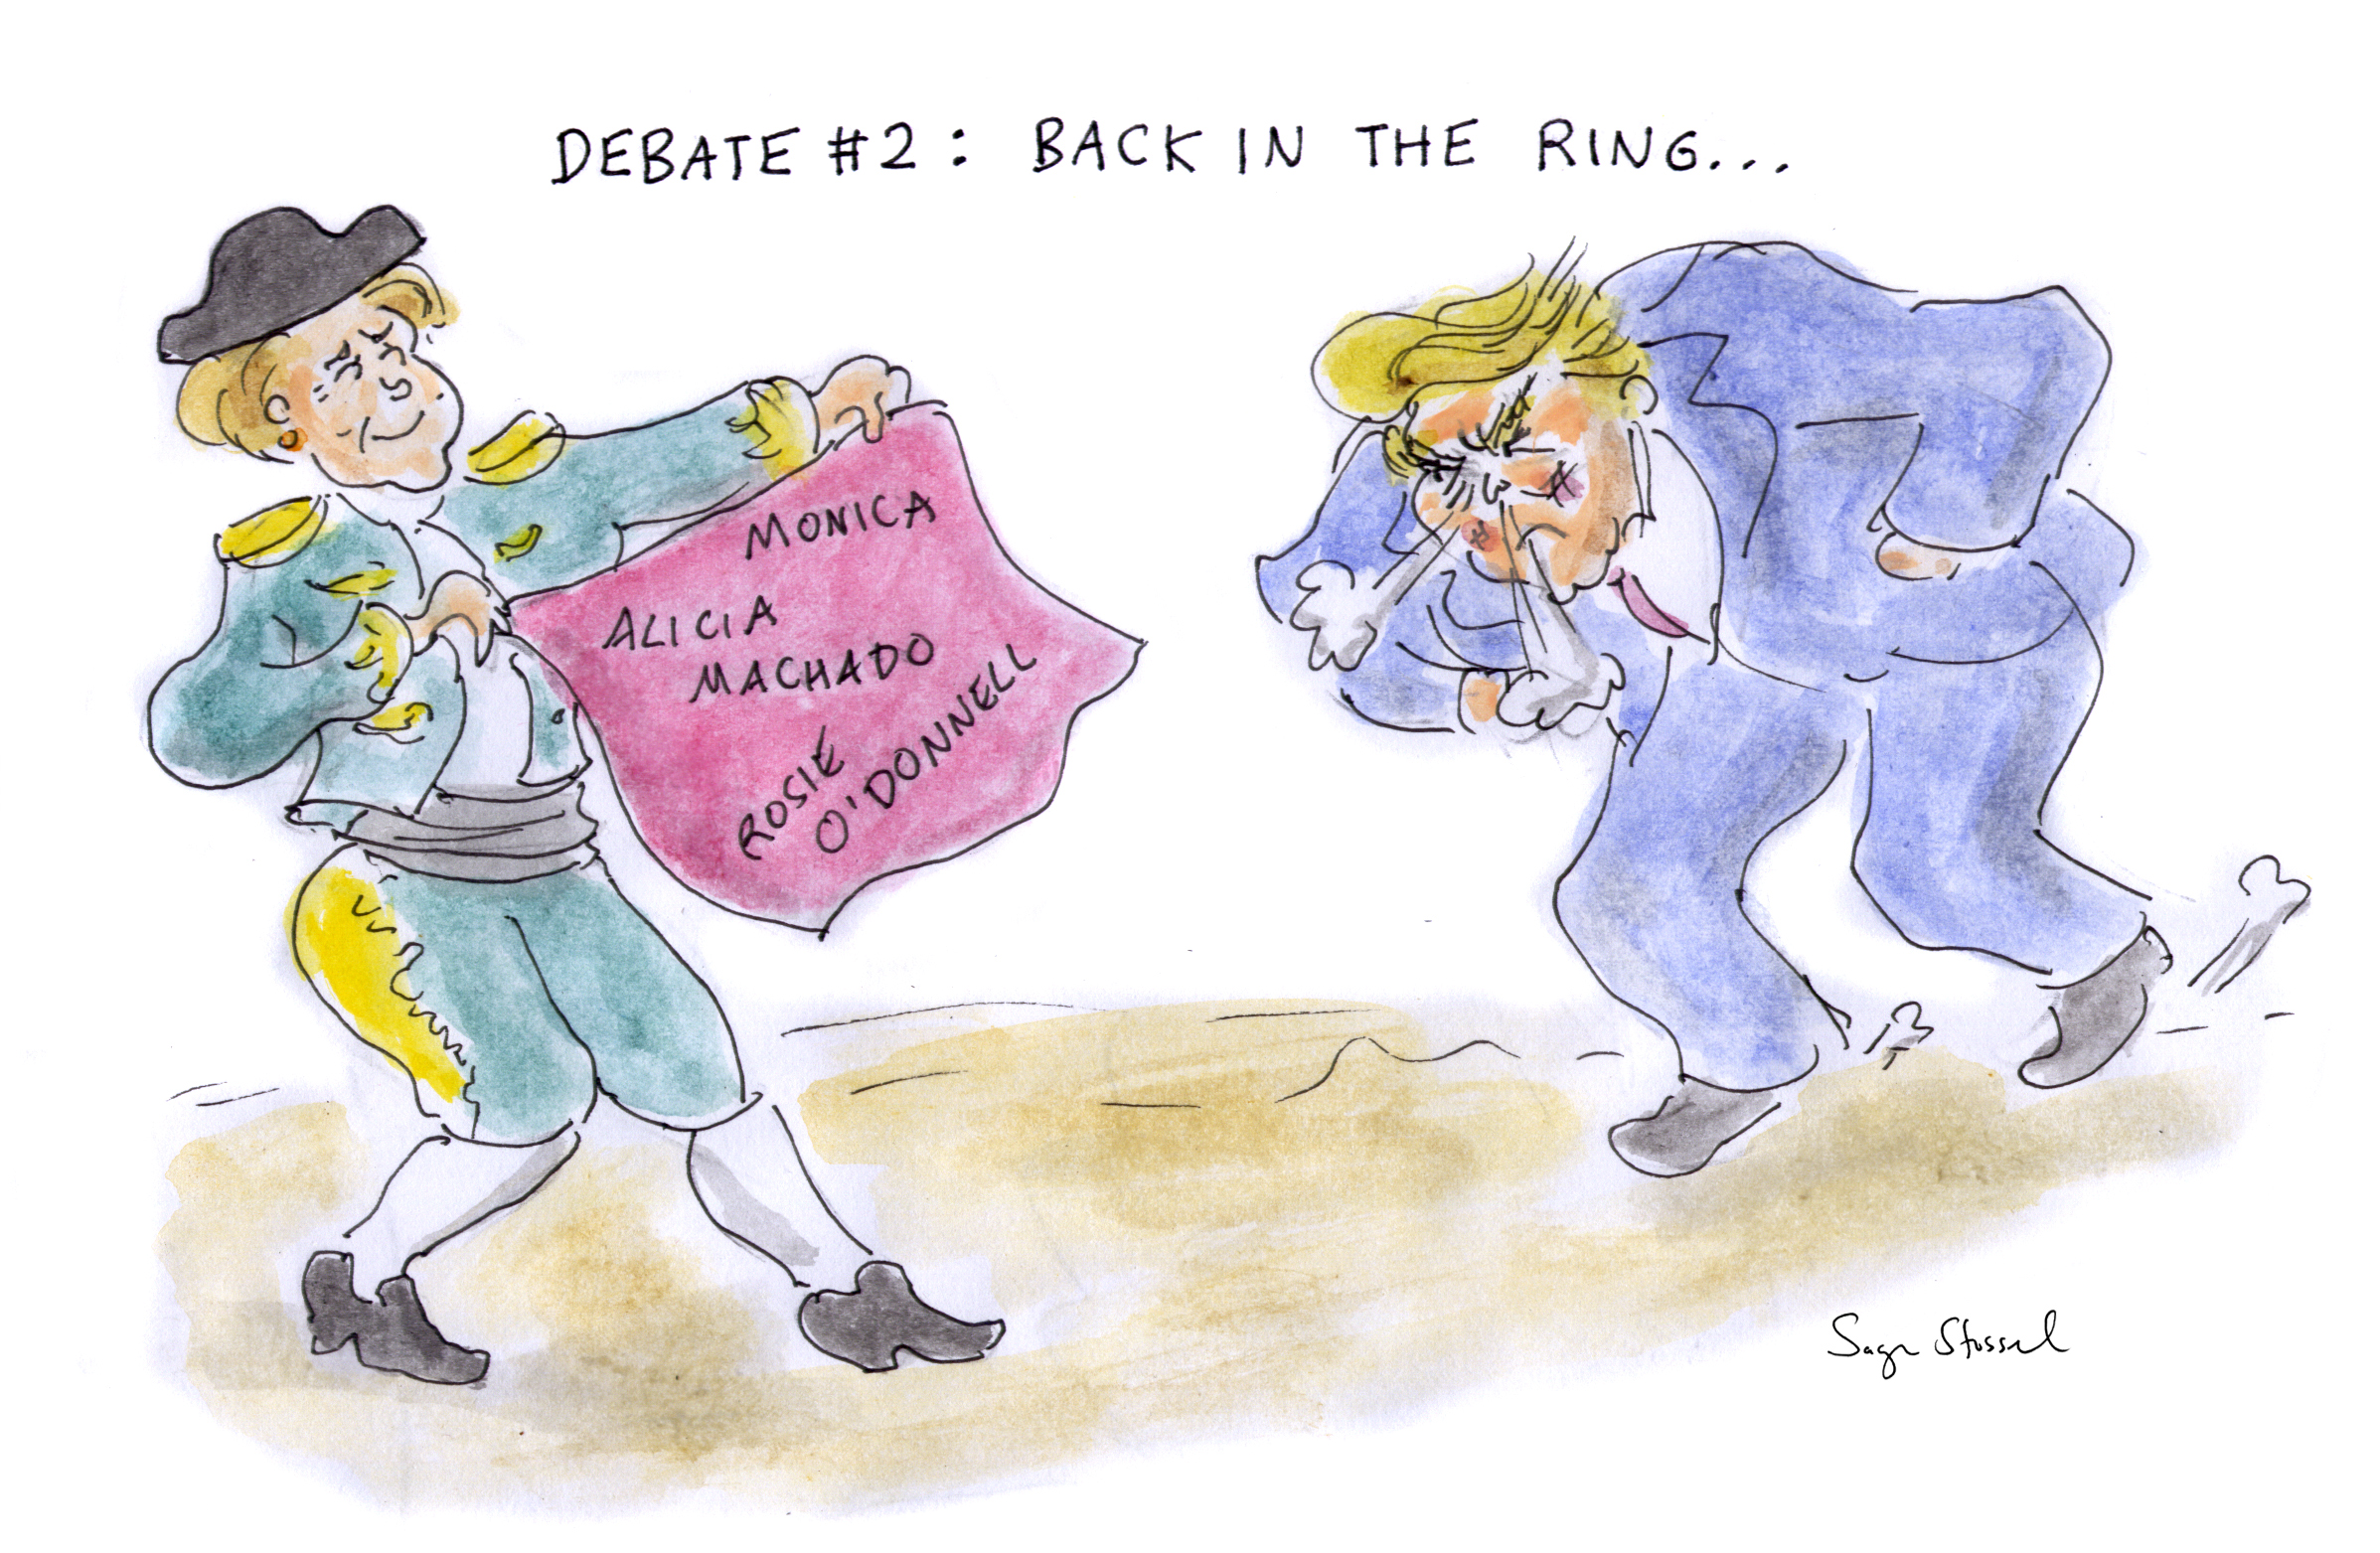 clinton trump second presidential debate, anderson cooper, cnn, cartoon